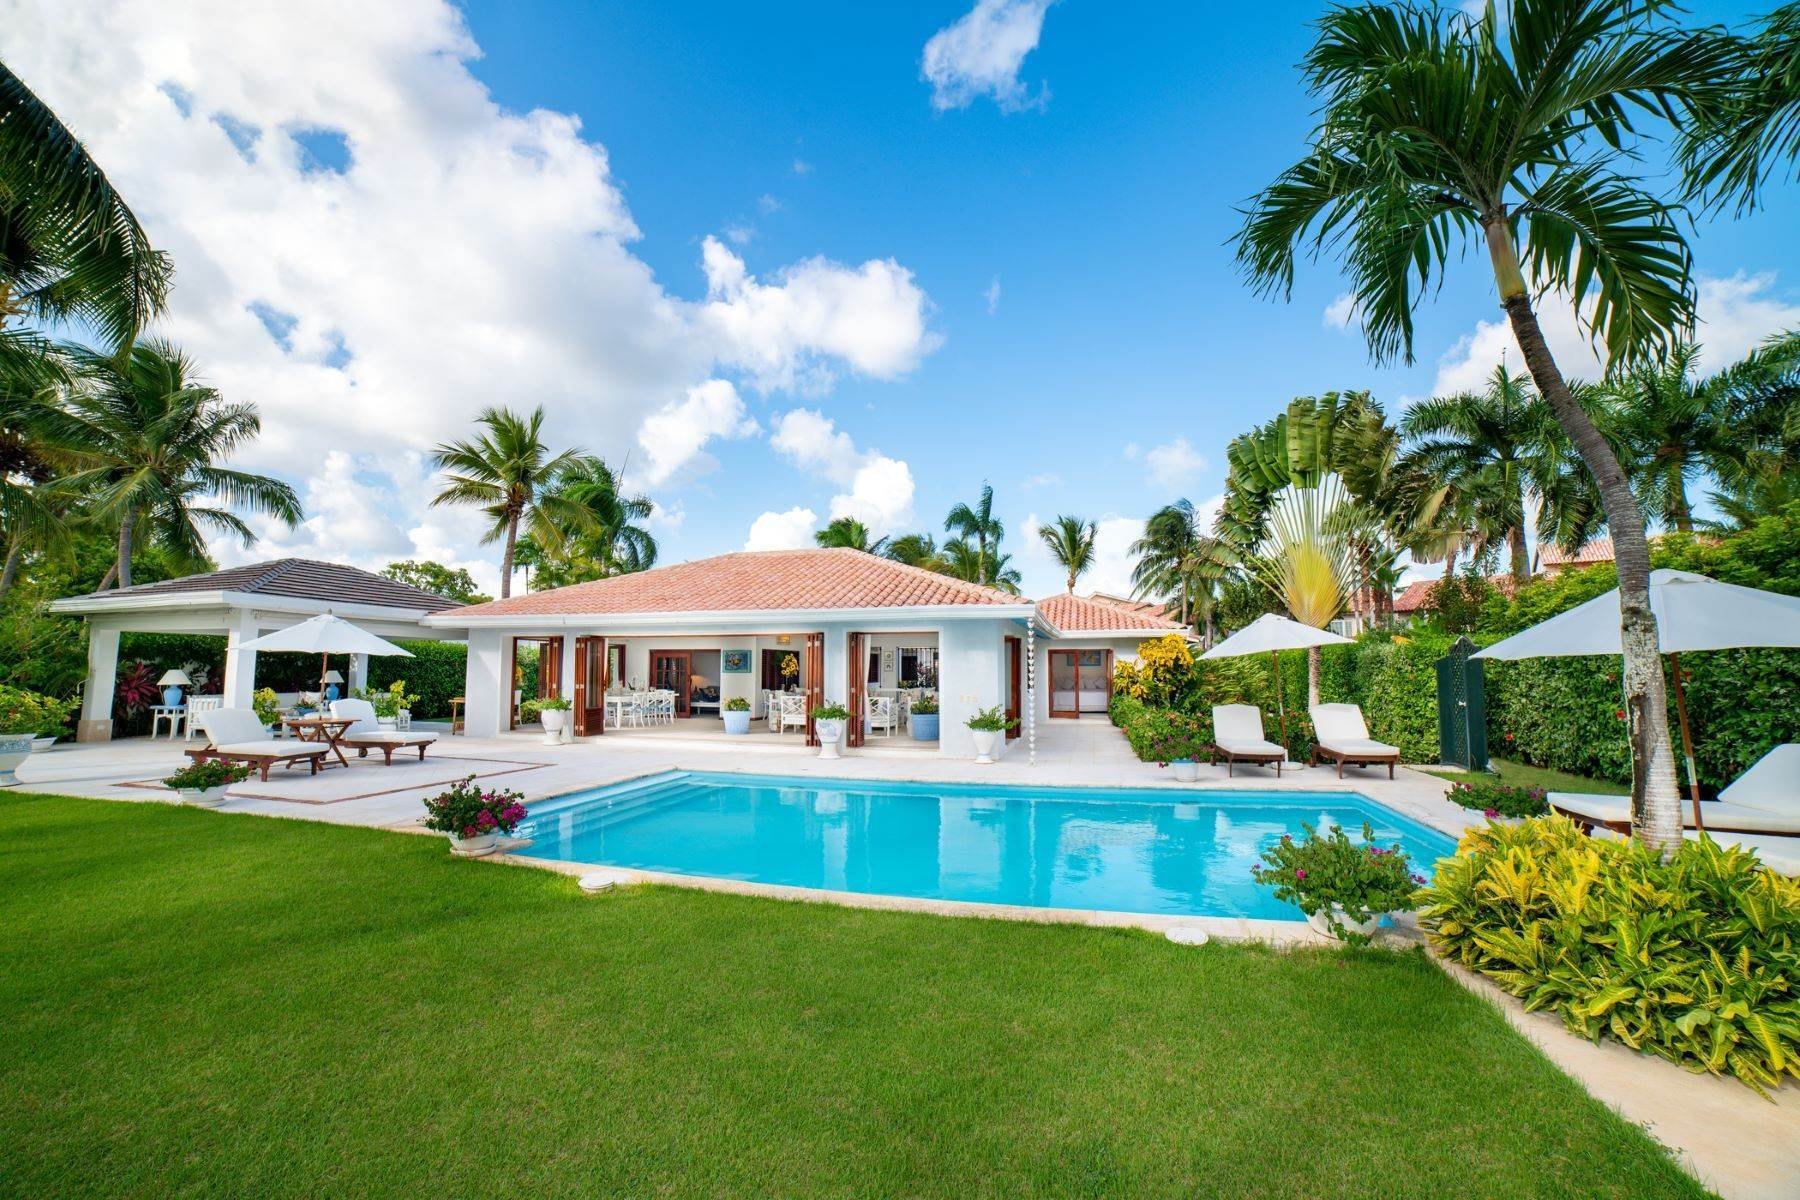 Single Family Homes for Sale at Calle del Faro # 9 - Beachfront Paradise with direct Ocean Views Calle del Faro # 9 Casa De Campo, La Romana 22000 Dominican Republic